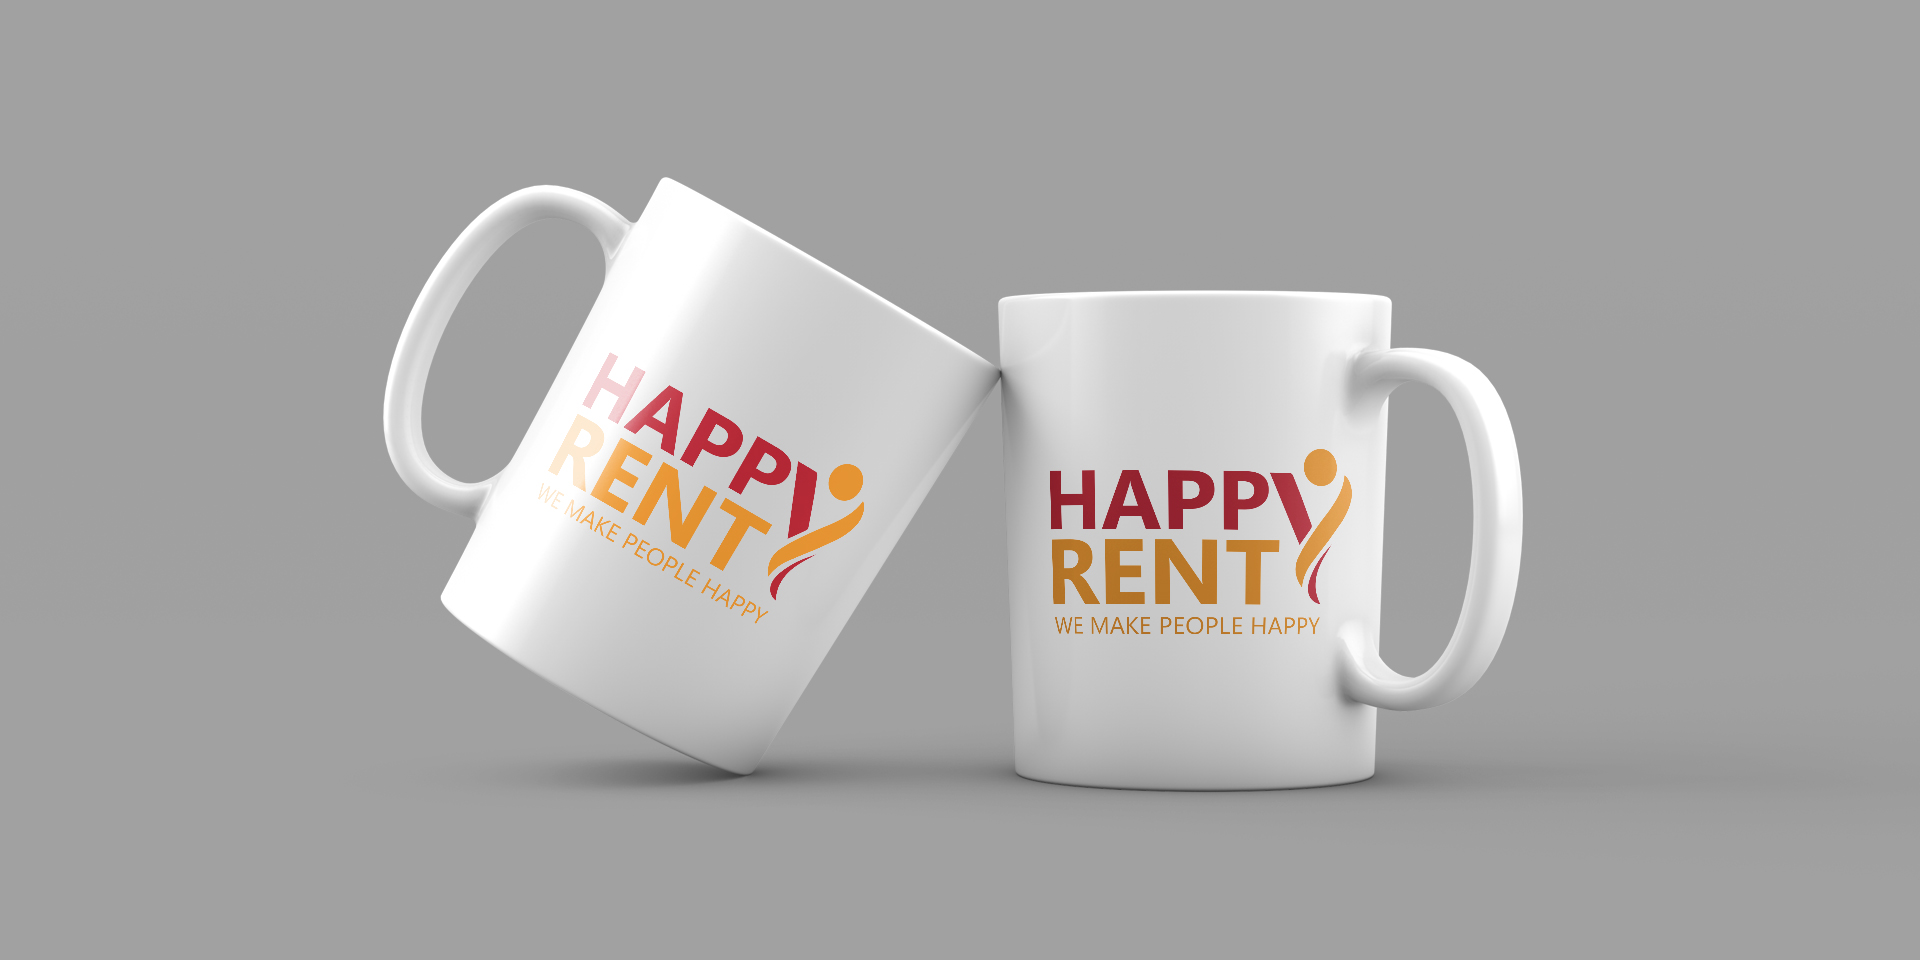 Брандирани чаши за Happy Rent